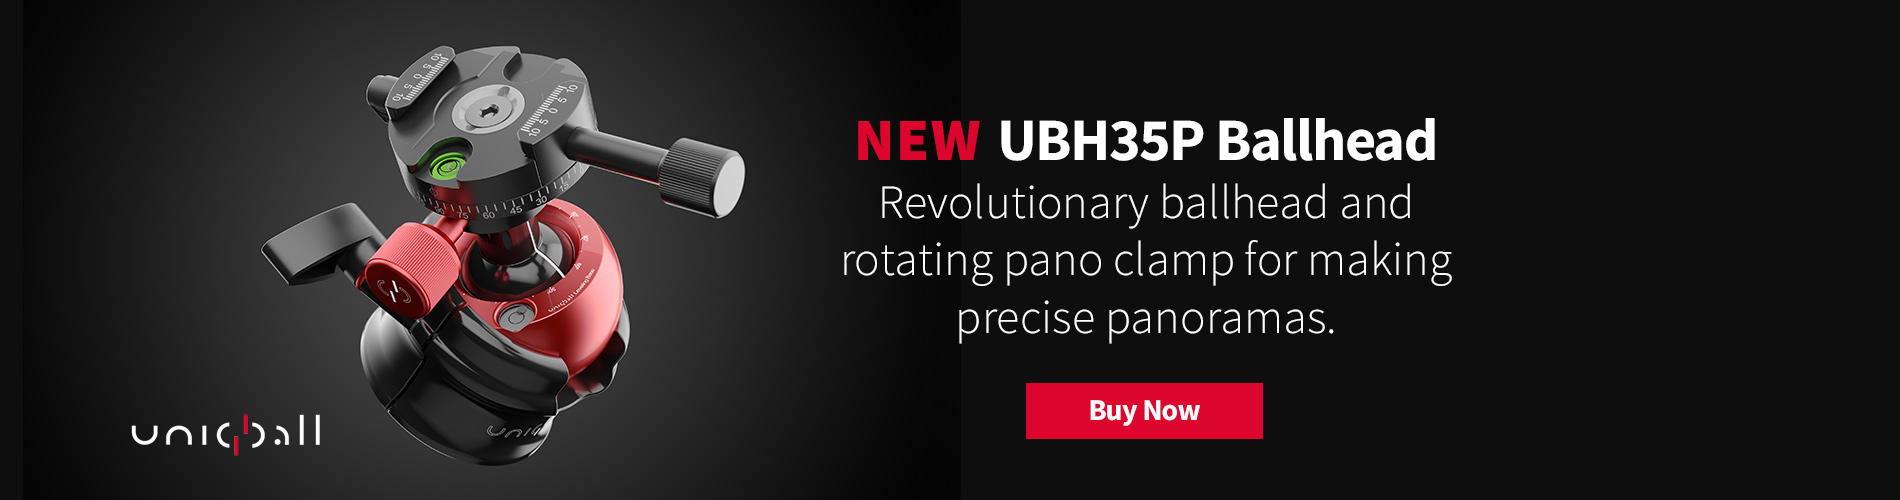 NEW UniqBall UBH35P Ballhead - Revolutionary ballhead and rotating pano clamp for making precise panoramas.